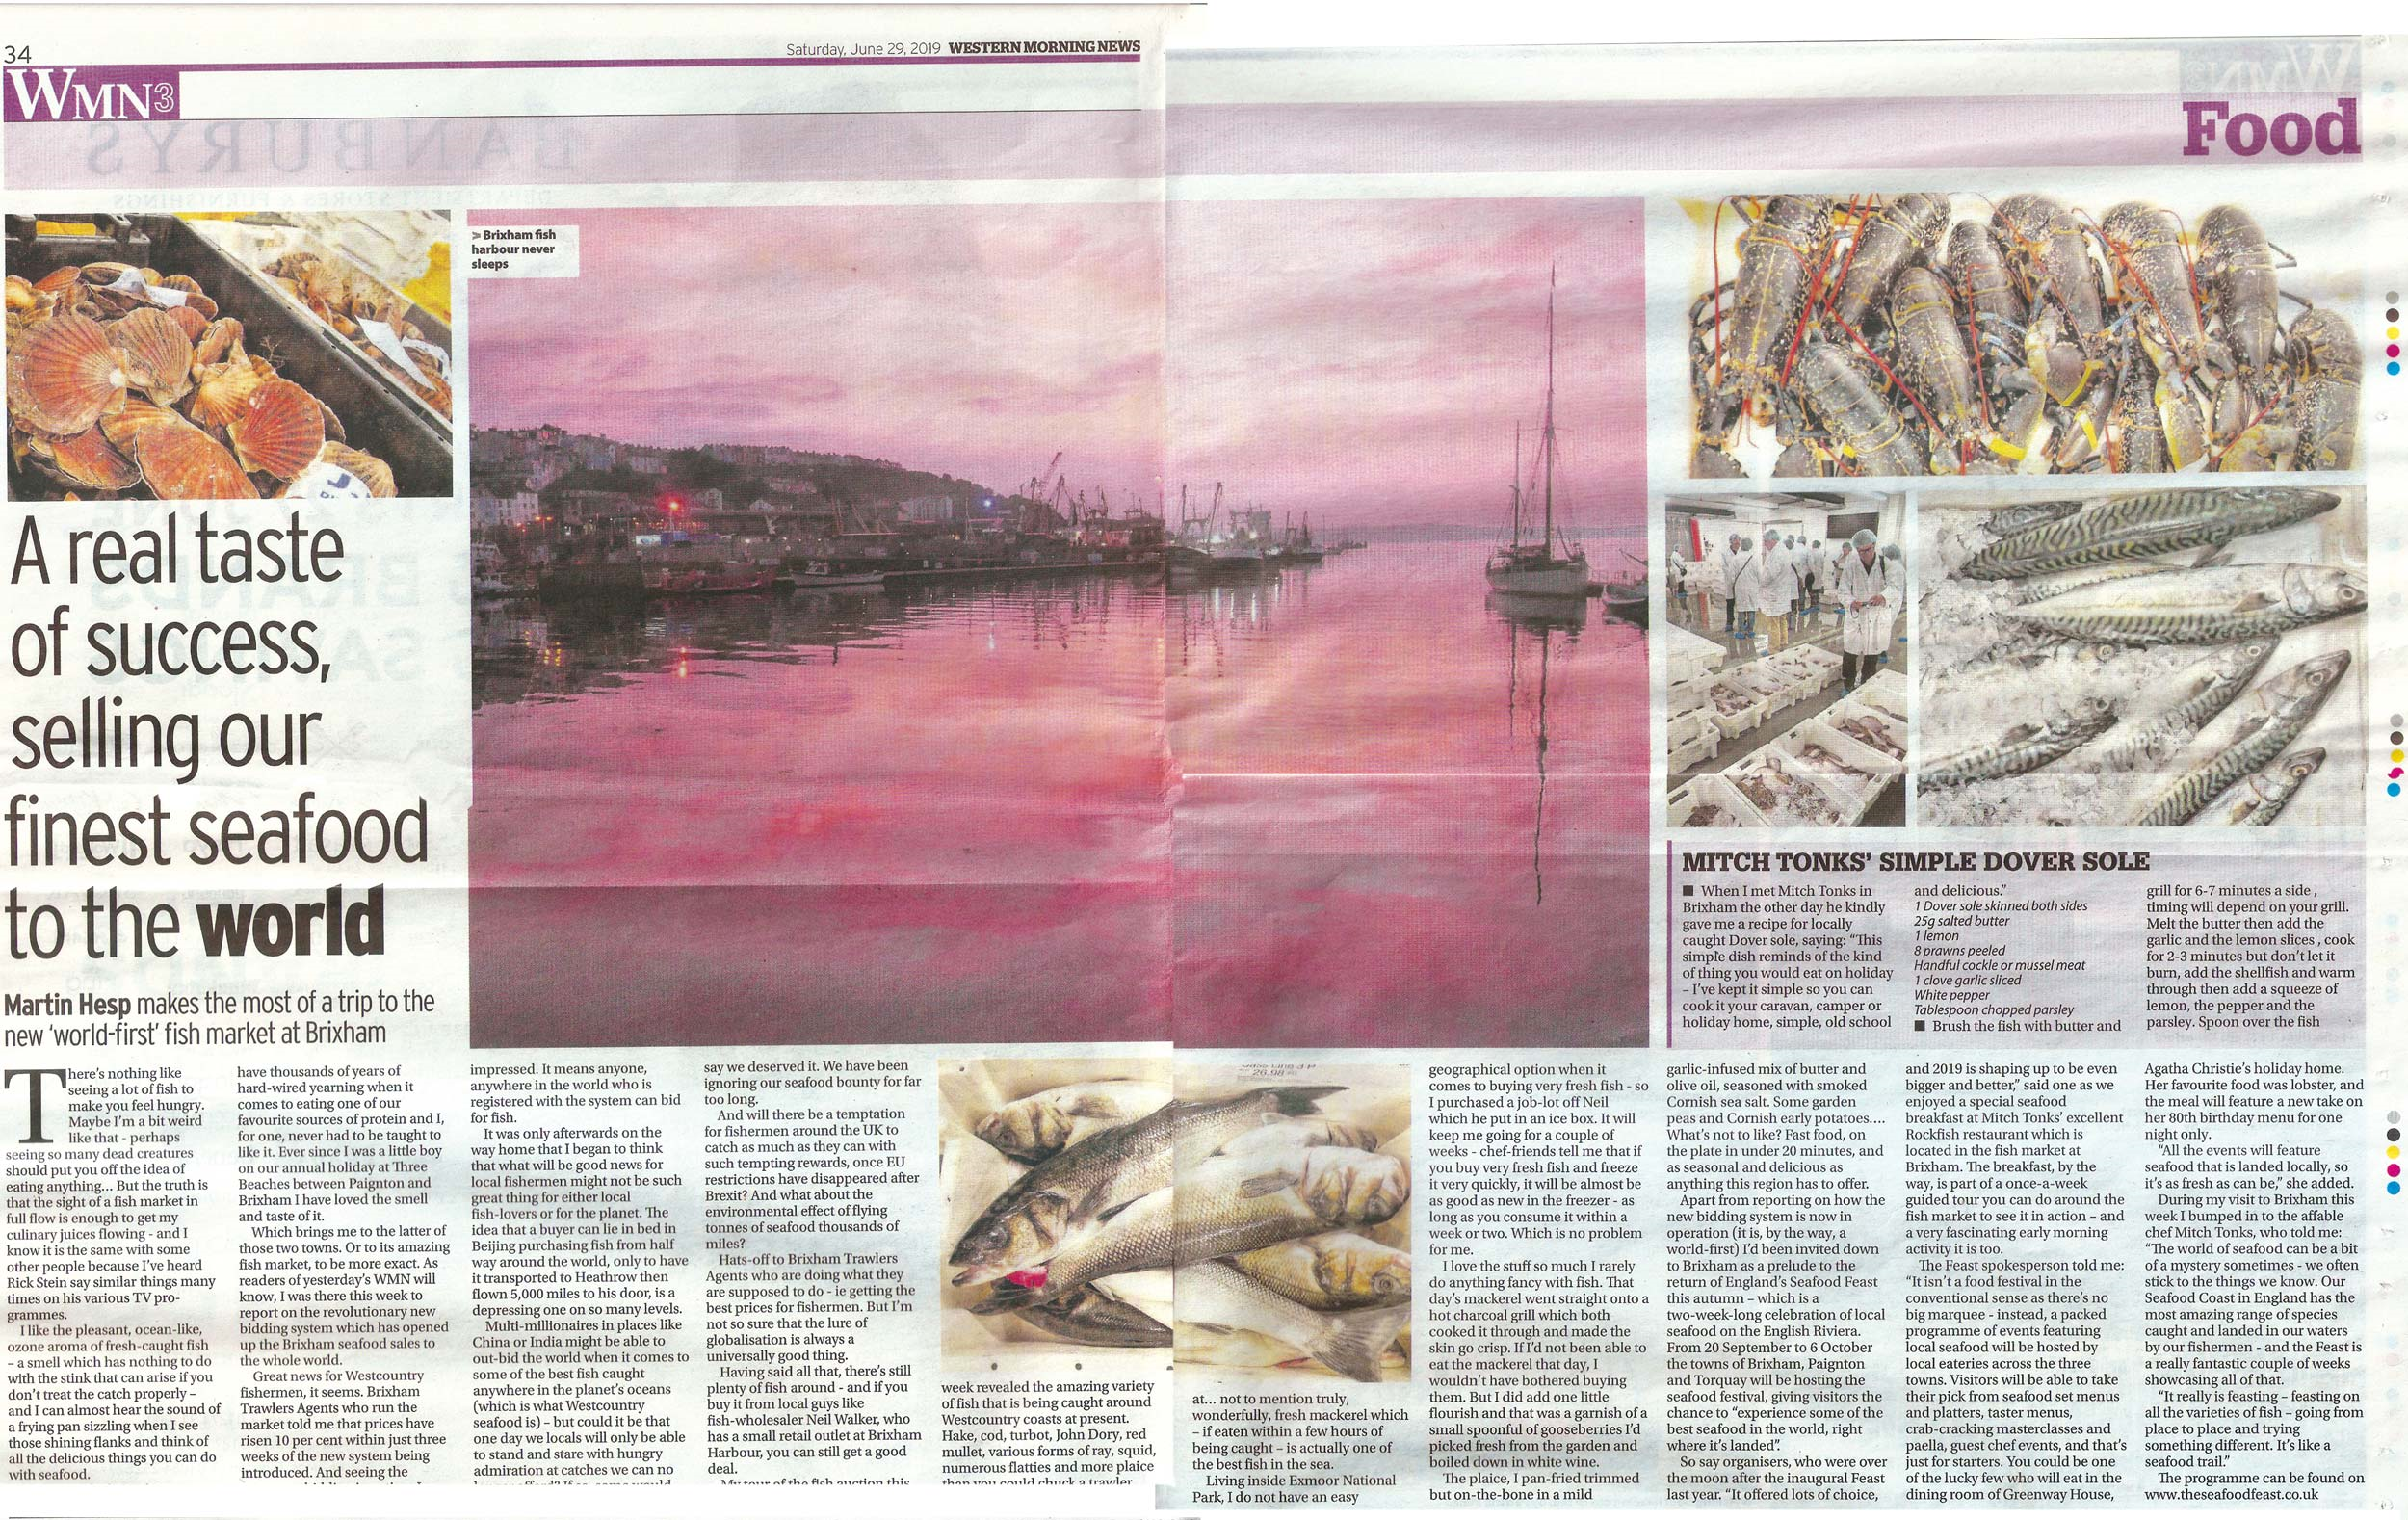 Western Morning News, 'A Real Taste Of Success Selling Our Seafood To The World' - June 2019